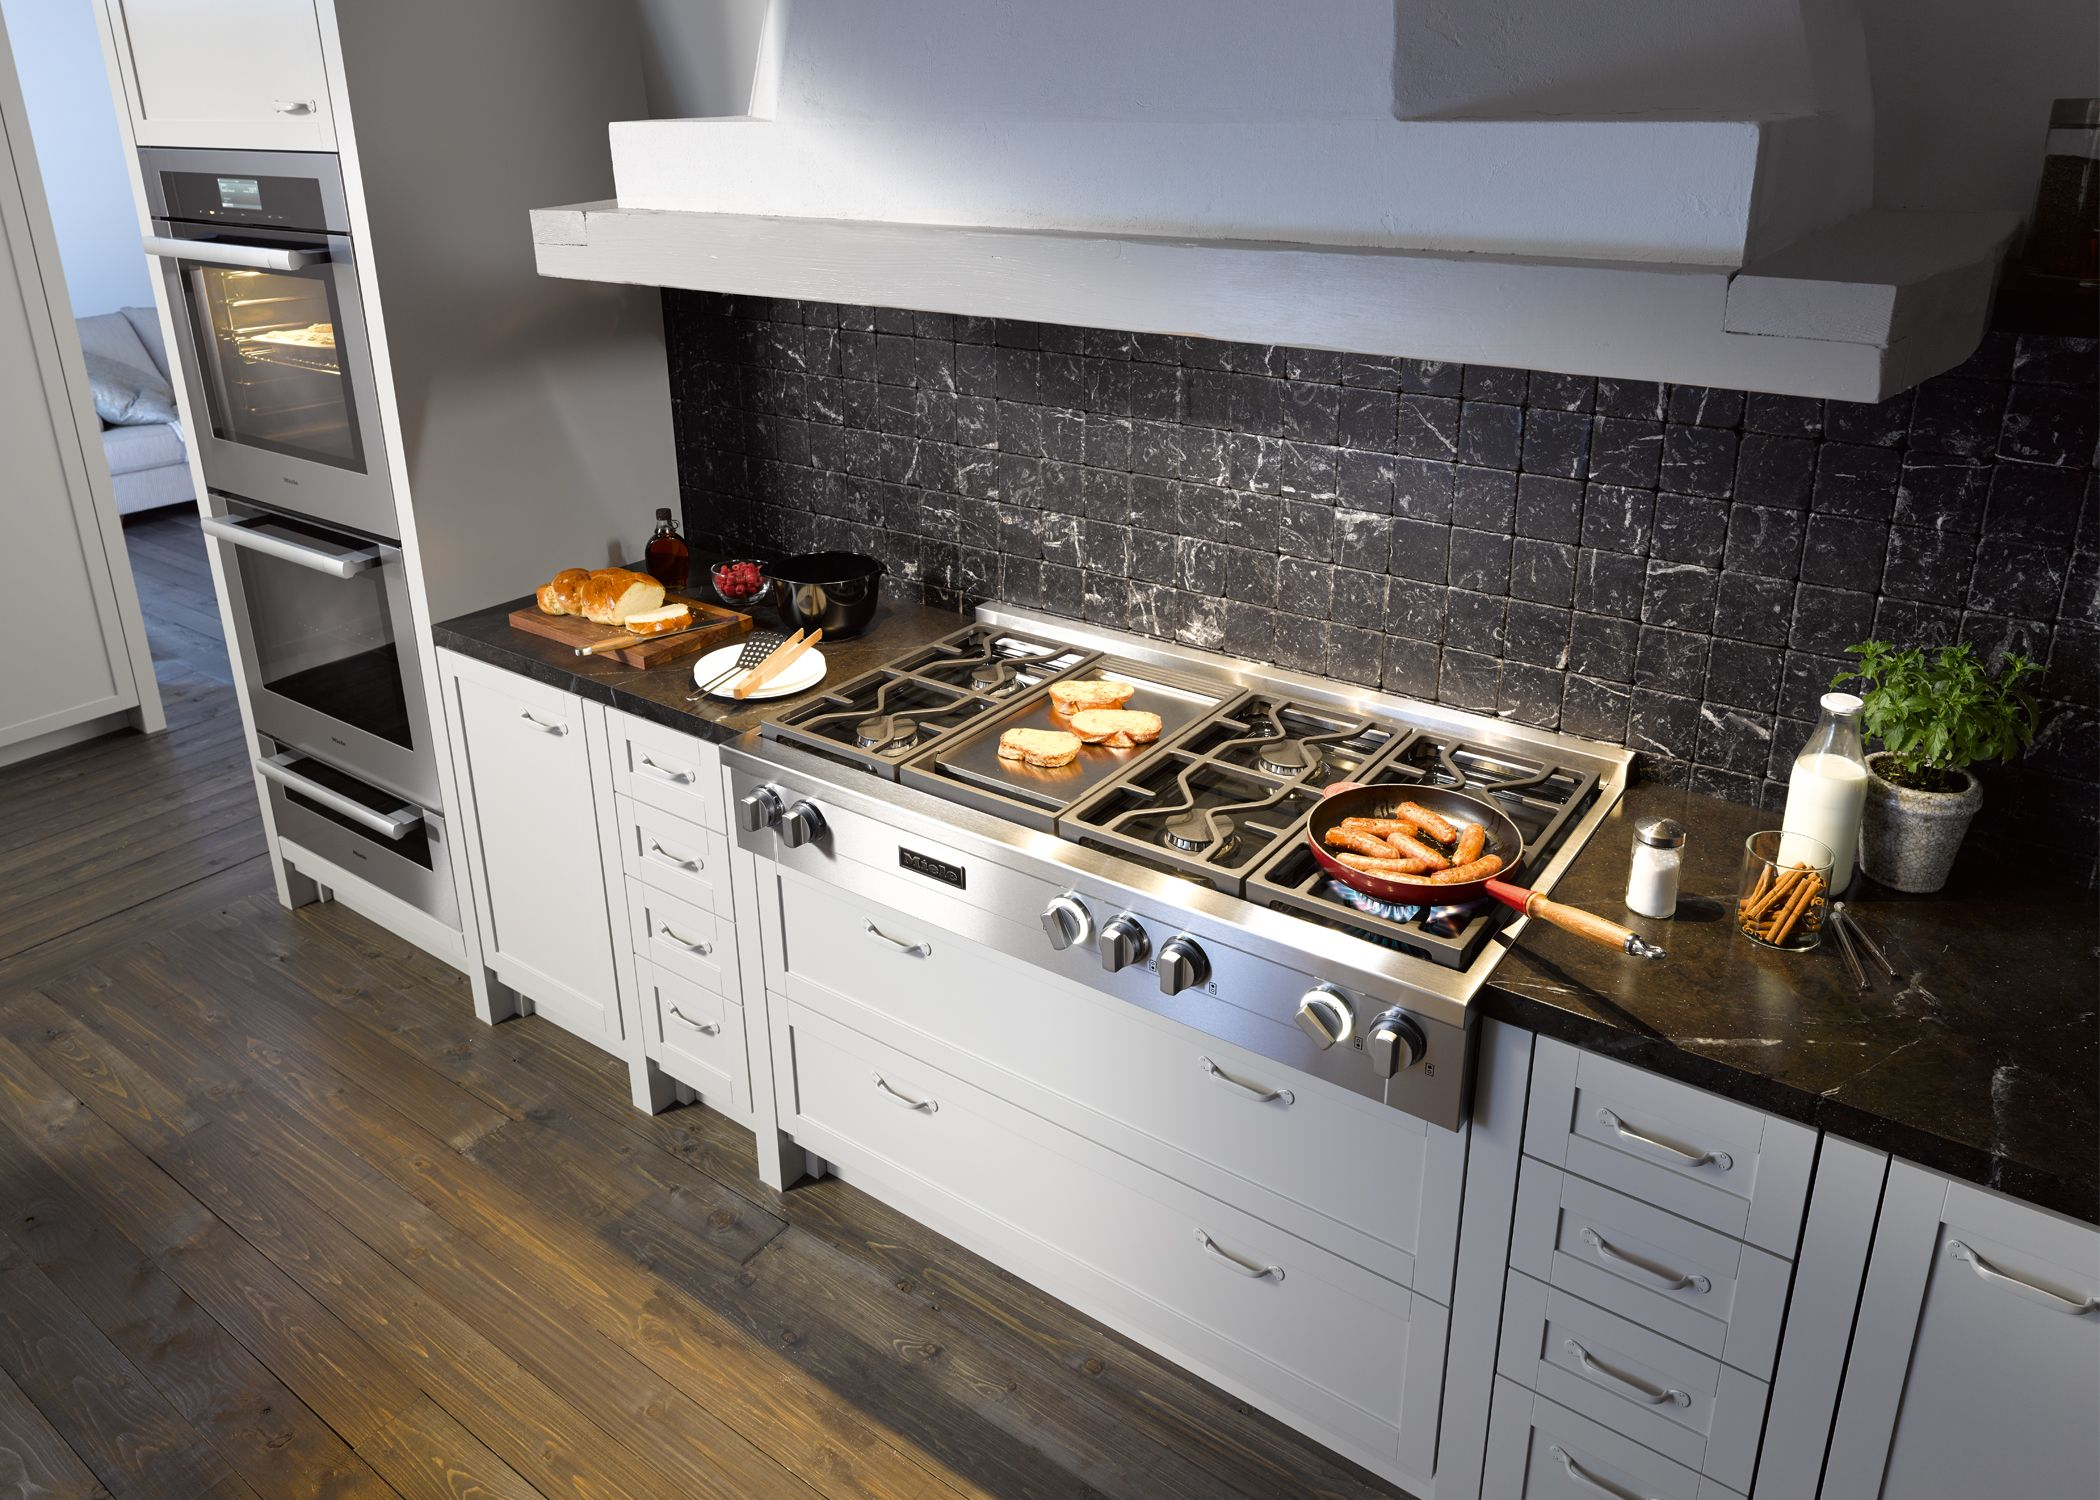 Miele Rangetop Cooktop With Built In Griddle Wall